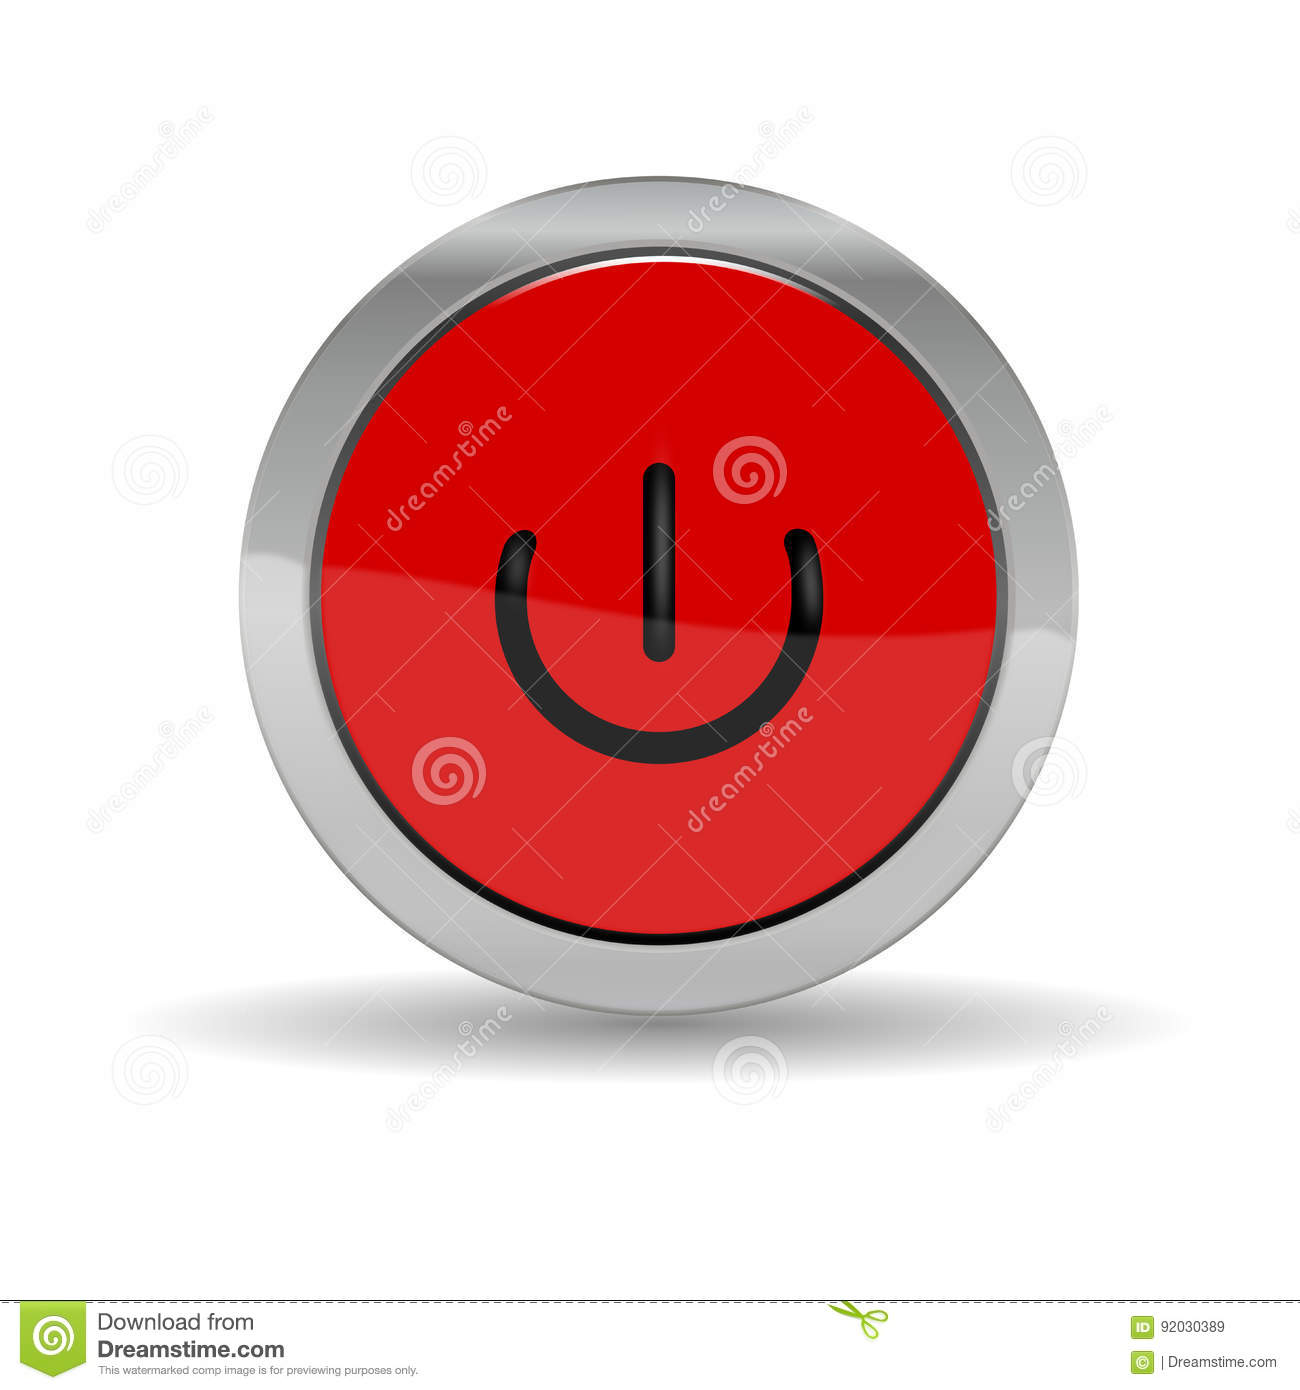 Start stop button, icon stock illustration  Illustration of